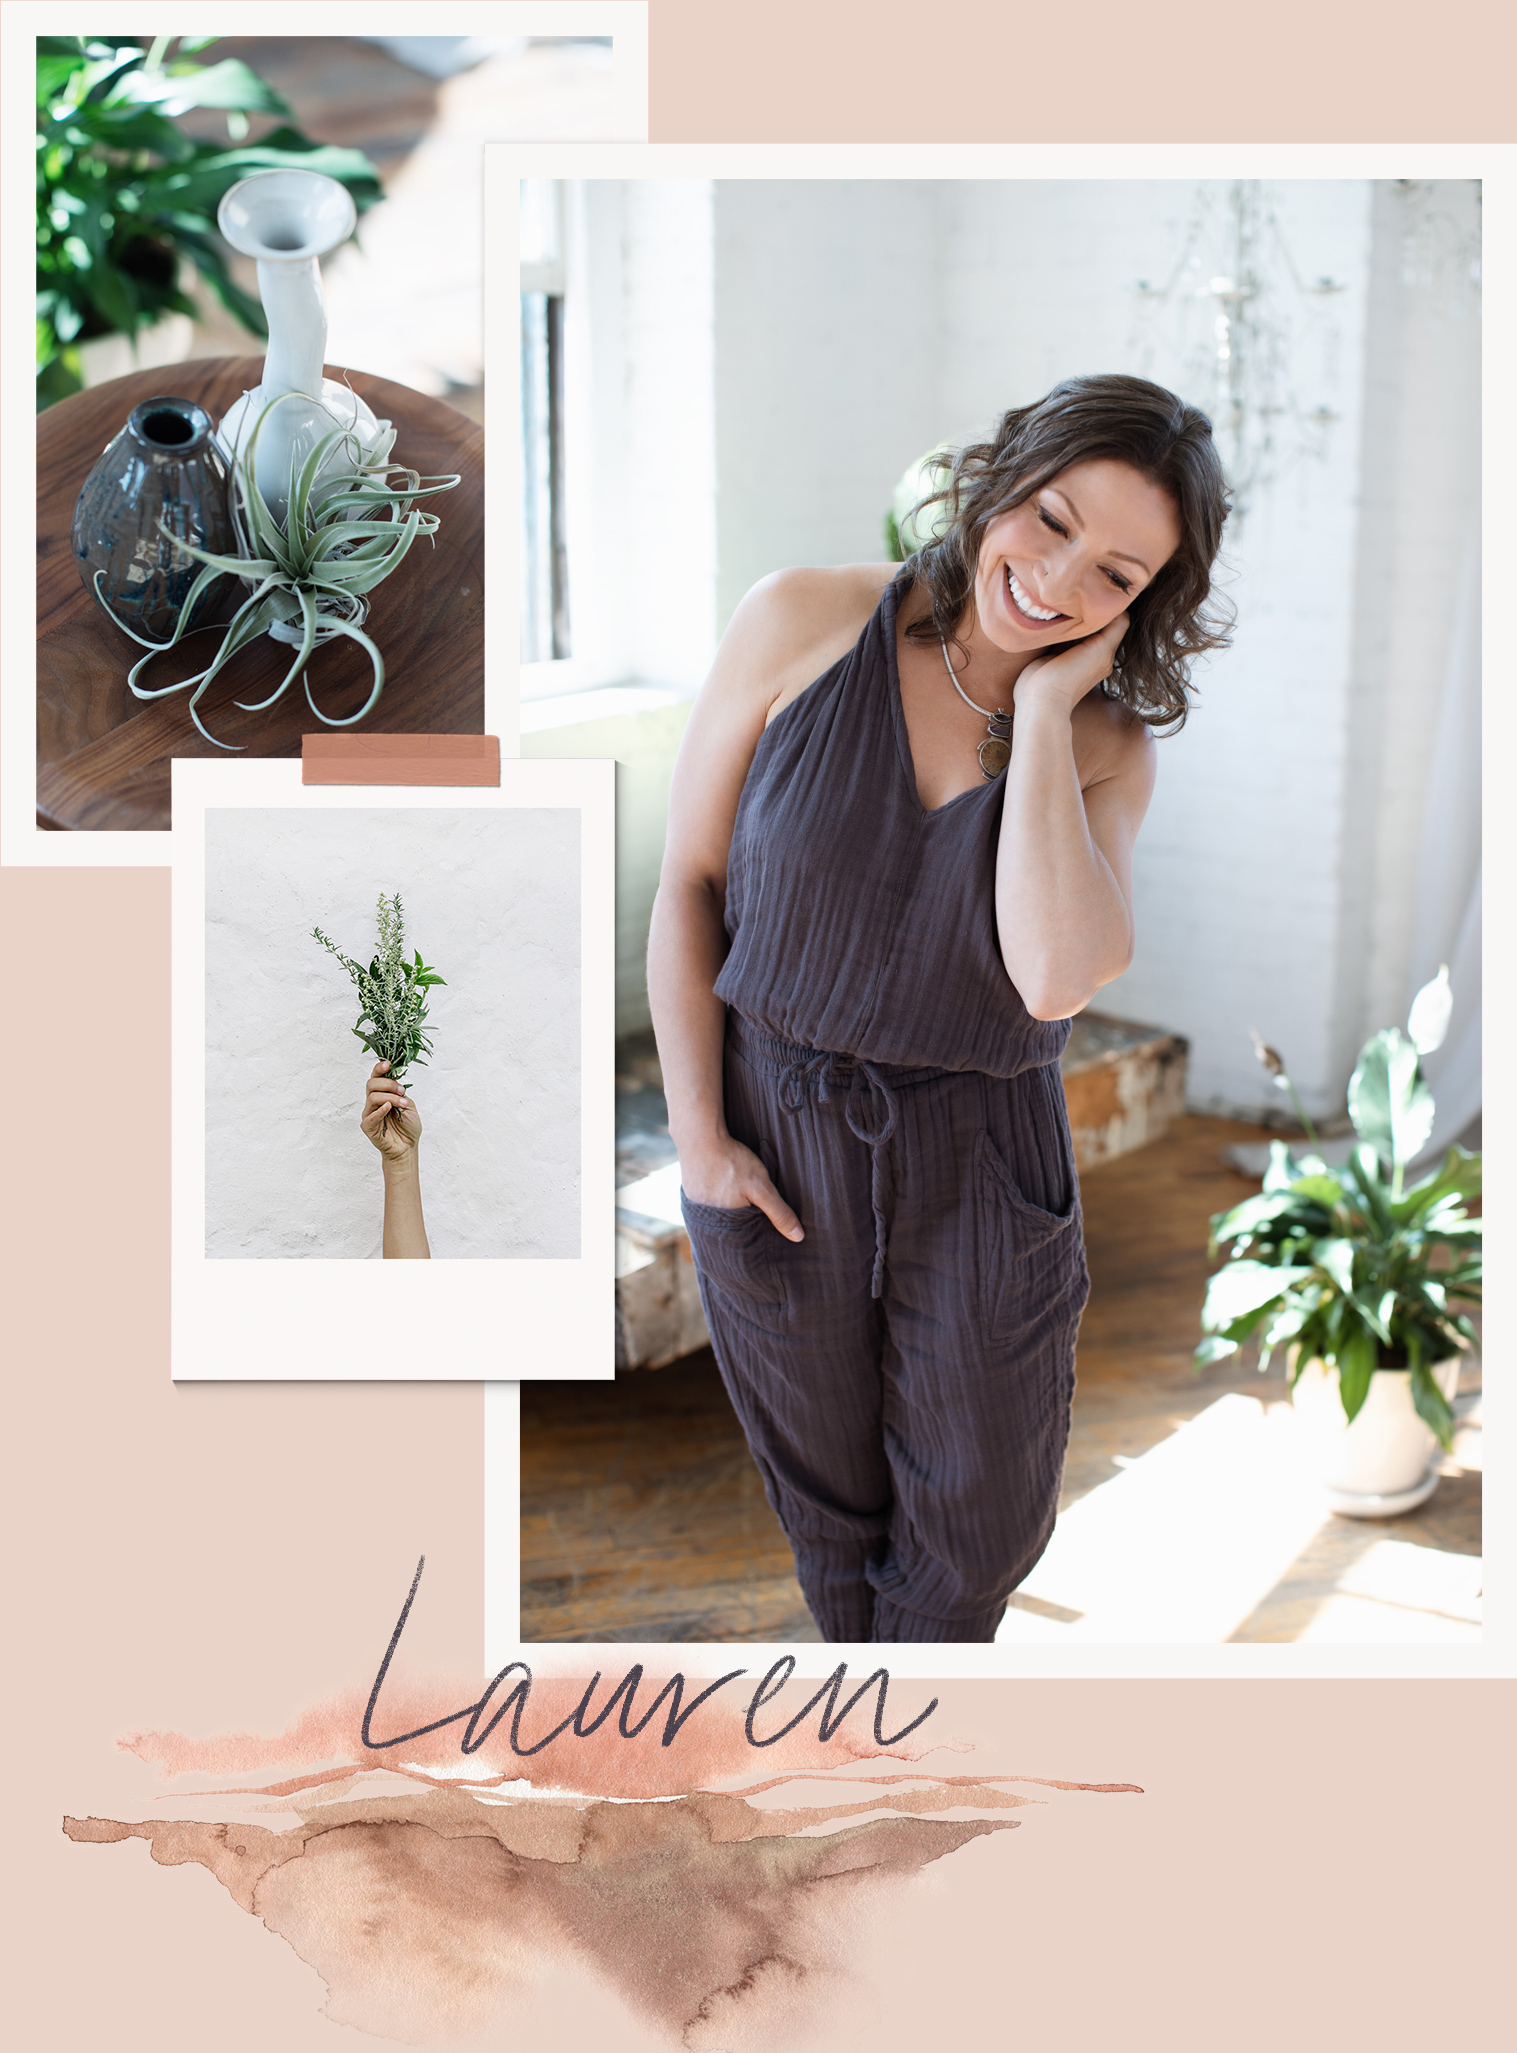 Meet Lauren - Lauren is a whole-being  embodiment coach and mindfulness instructor. She combines sustainability system concepts with consciousness theory to support her clients' personal and professional development.